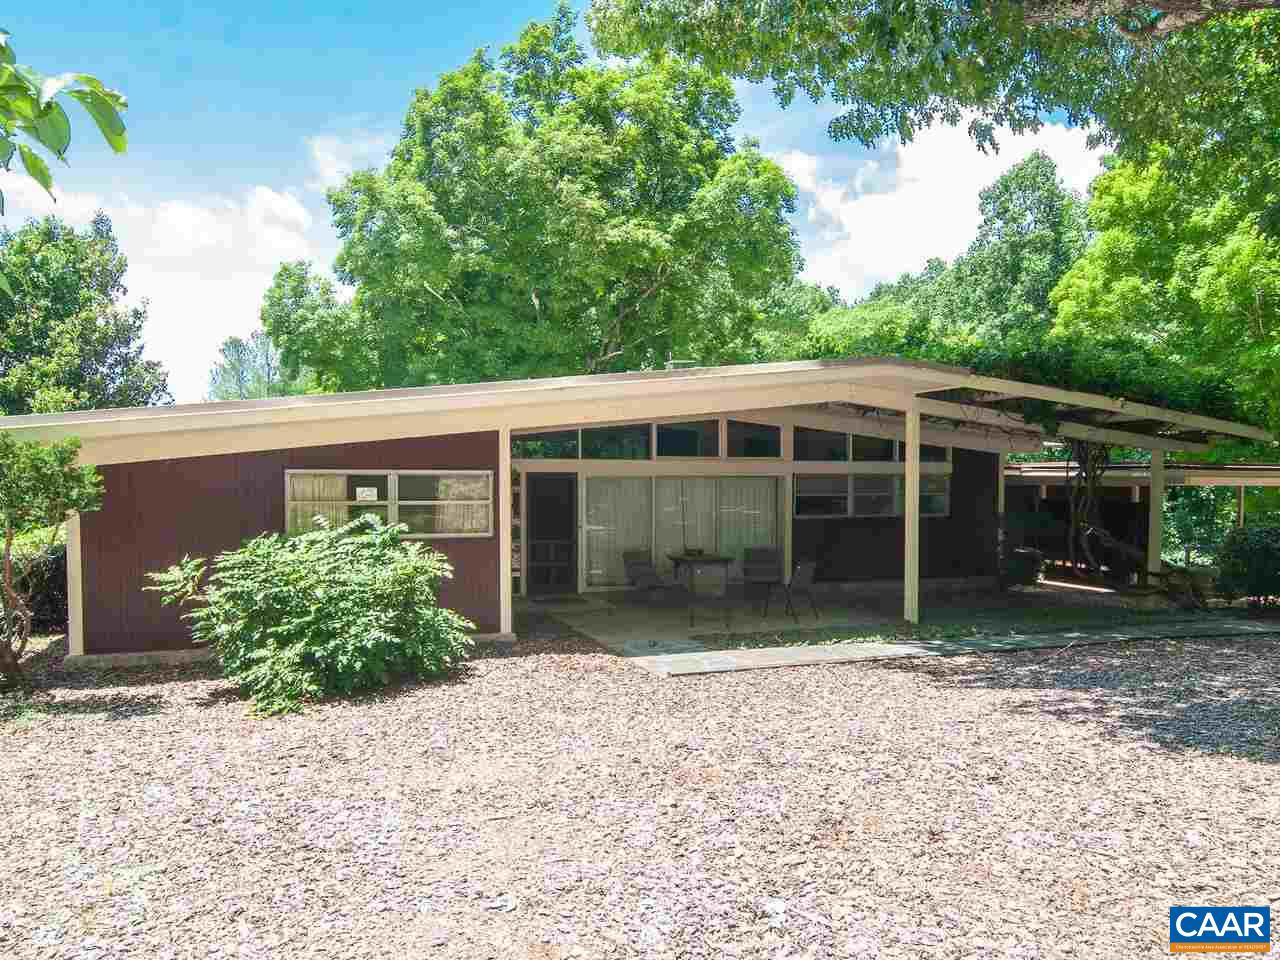 OPEN HOUSE - Aug. 11, 1-3. Mid Century Contemporary located in Ivy, less than 10 minutes from town & in  the desirable Meriwether Lewis/Western school district. Consisting of 2 parcels of  3.8 total acres, with the home on a parklike 2.21 acre setting which backs up to 1.8 acres of mostly open pasture land that is nearly fully fenced. There is a 2 stall horse barn with tack room, storage & workshop area. Electricity & water available. Uniquely charming home with a taste of the 50's, has a large soapstone patio for relaxation & conversation , 2 car carport & separate workshop. Inside featuring a great room with lovely views of the rear pastoral setting, built-in bookshelves, vaulted ceilings, & the charm of three interior stone walls.